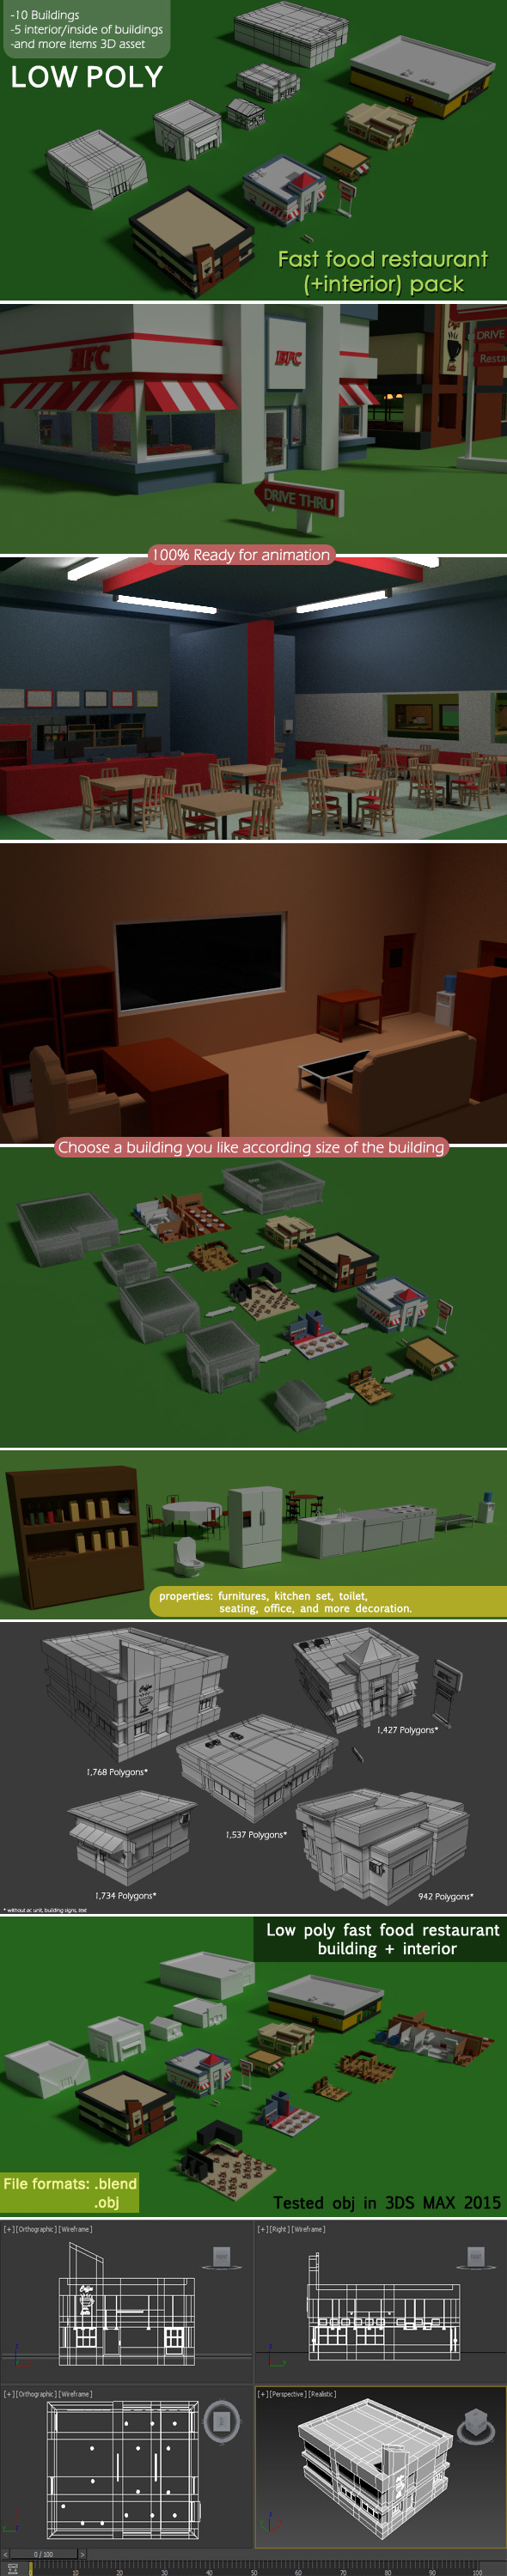 Low Poly Fast Food Restaurant (+interior) Pack - 3DOcean Item for Sale